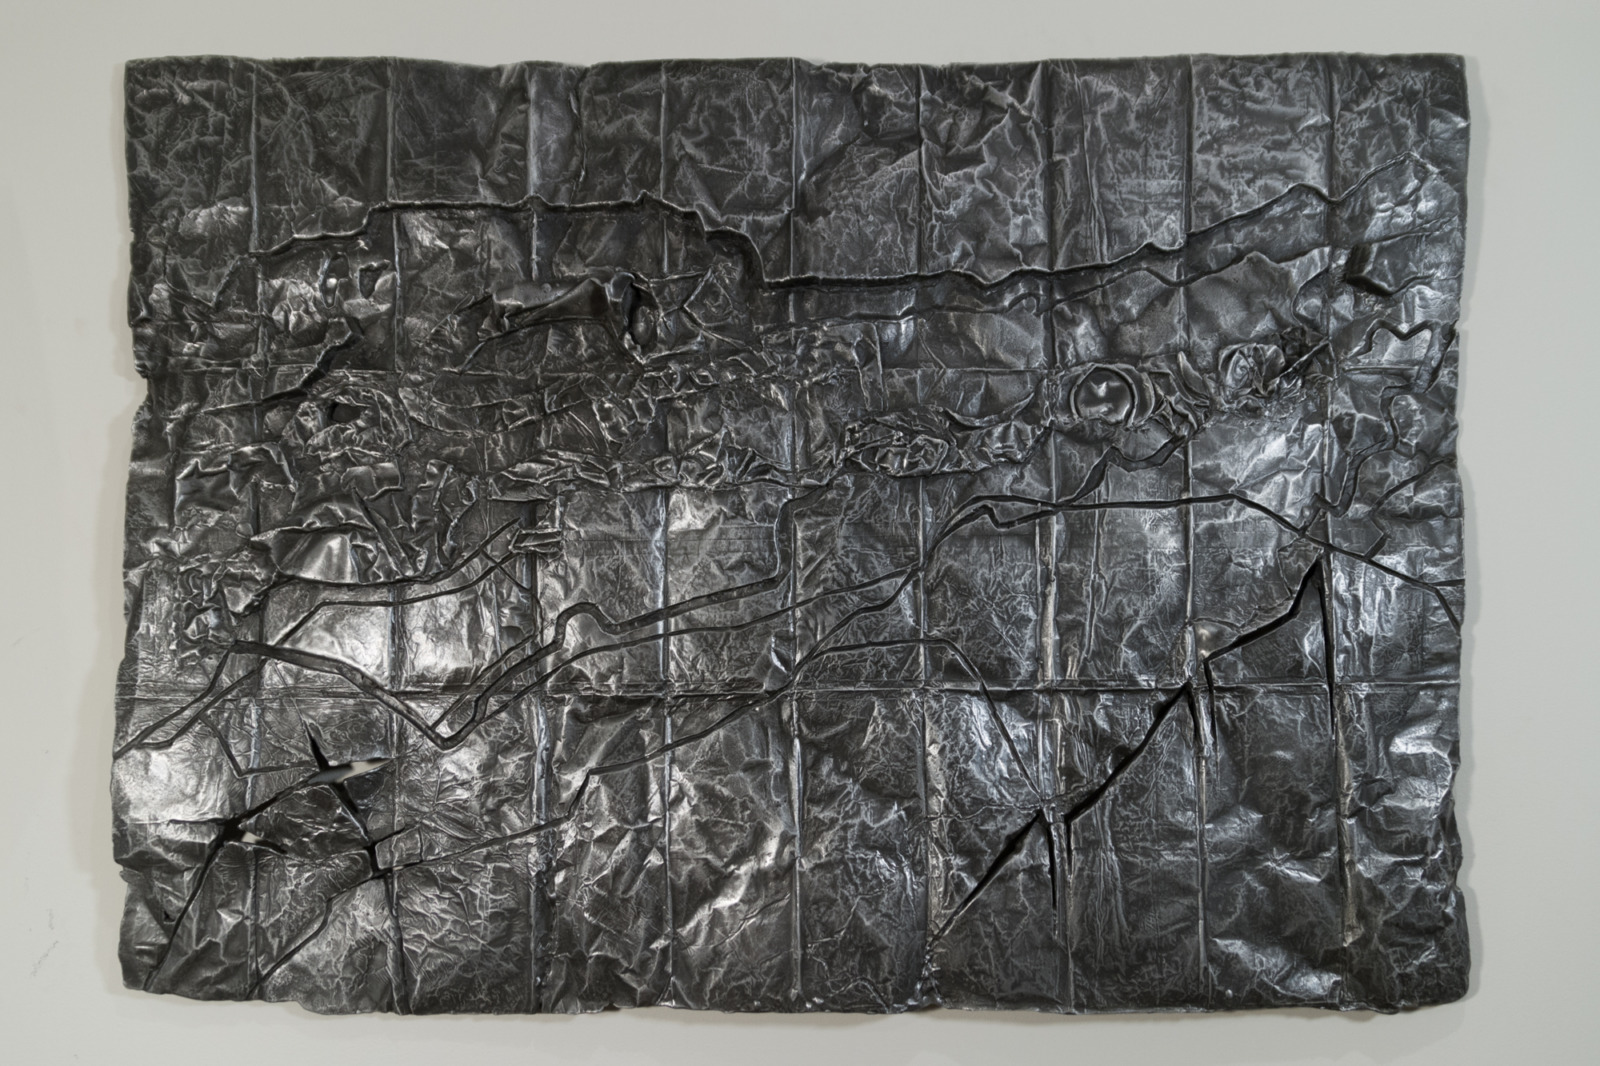 Saint Lawrence River, Massena, NY, cast aluminum sculpture, 71 cm x 91cm x 2 cm, 2013-4.